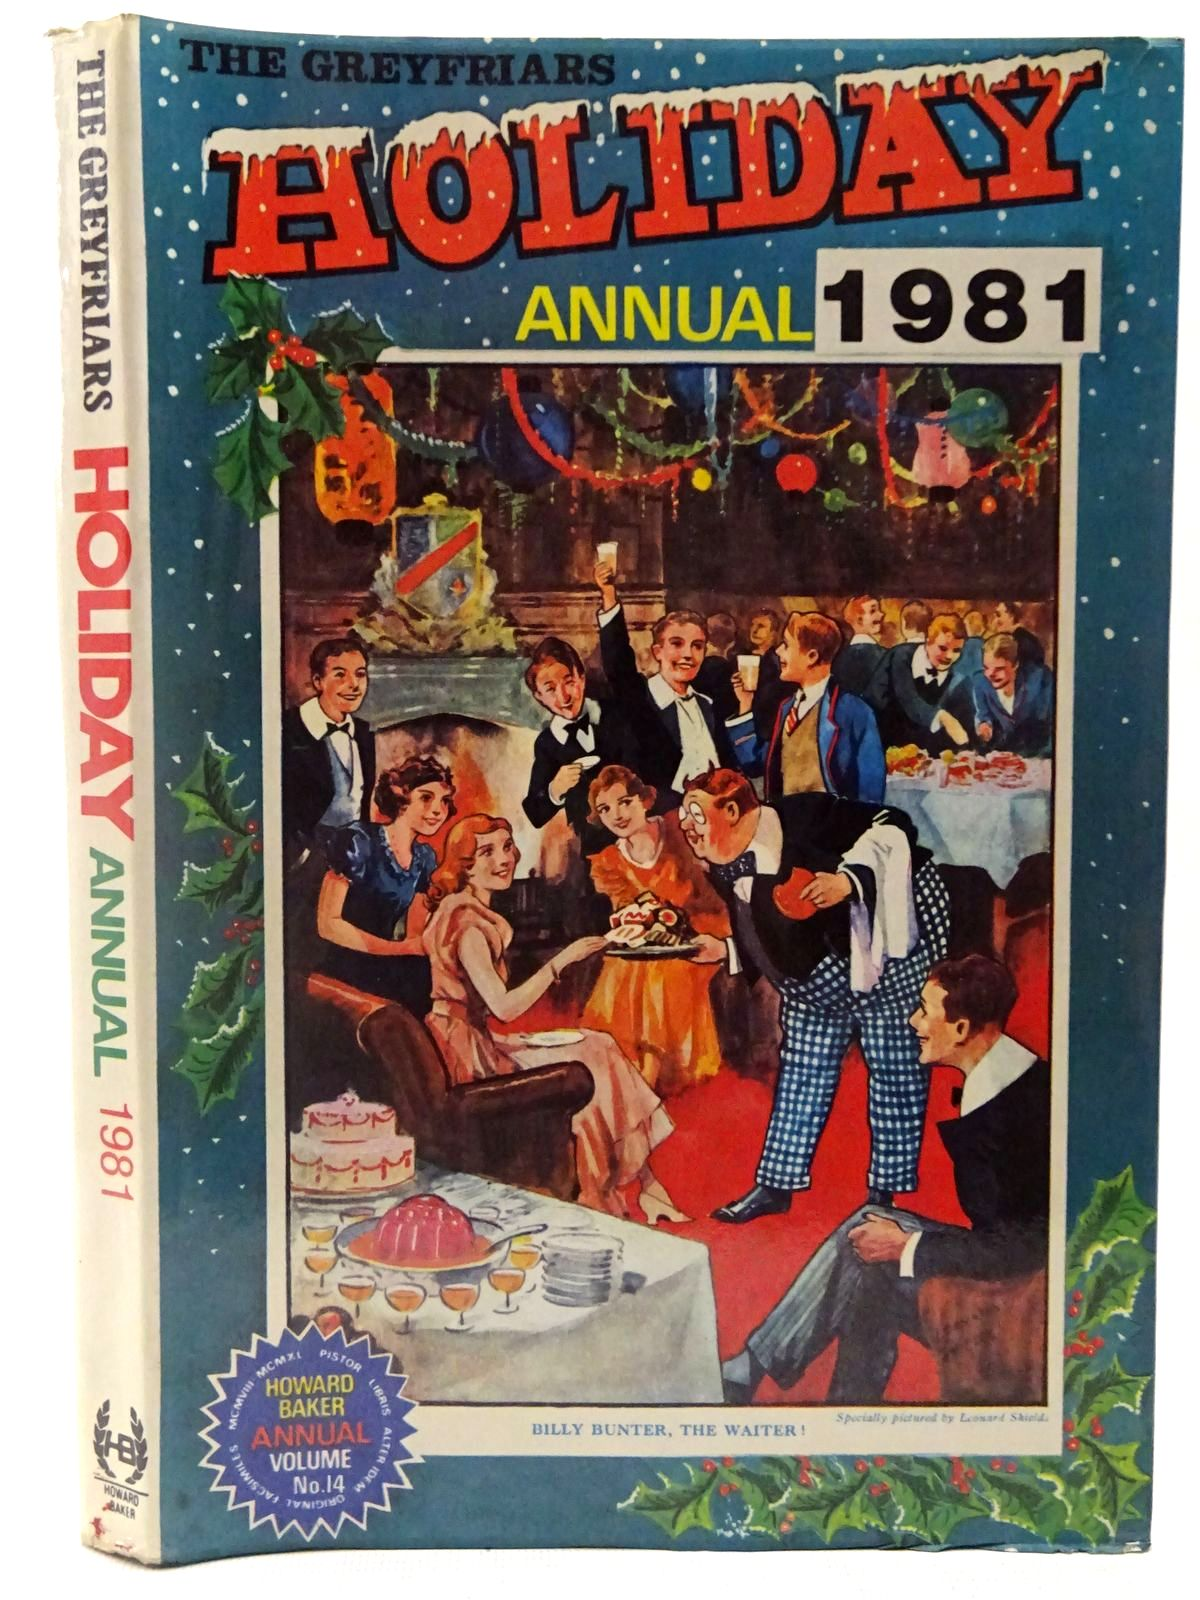 Photo of THE GREYFRIARS HOLIDAY ANNUAL 1981 written by Richards, Frank published by Howard Baker Press (STOCK CODE: 2126982)  for sale by Stella & Rose's Books